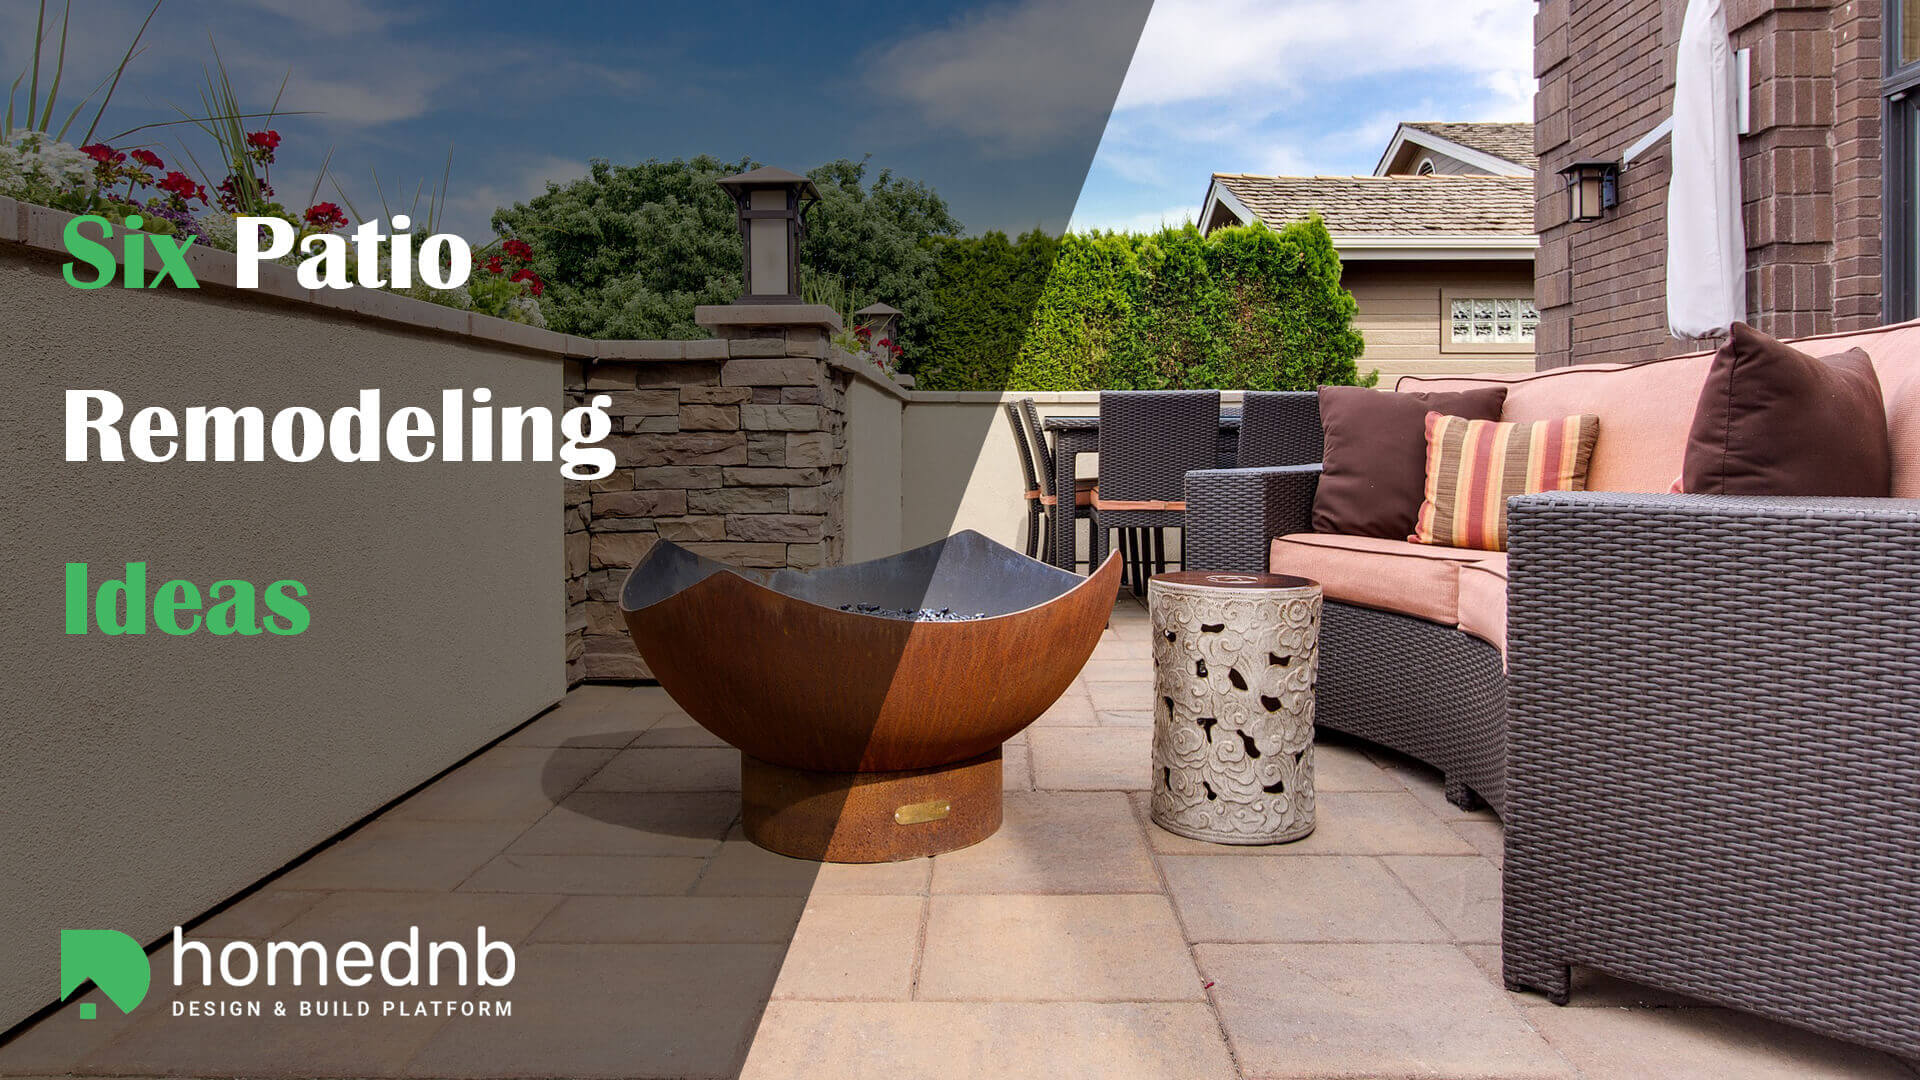 Six Patio Remodeling Ideas